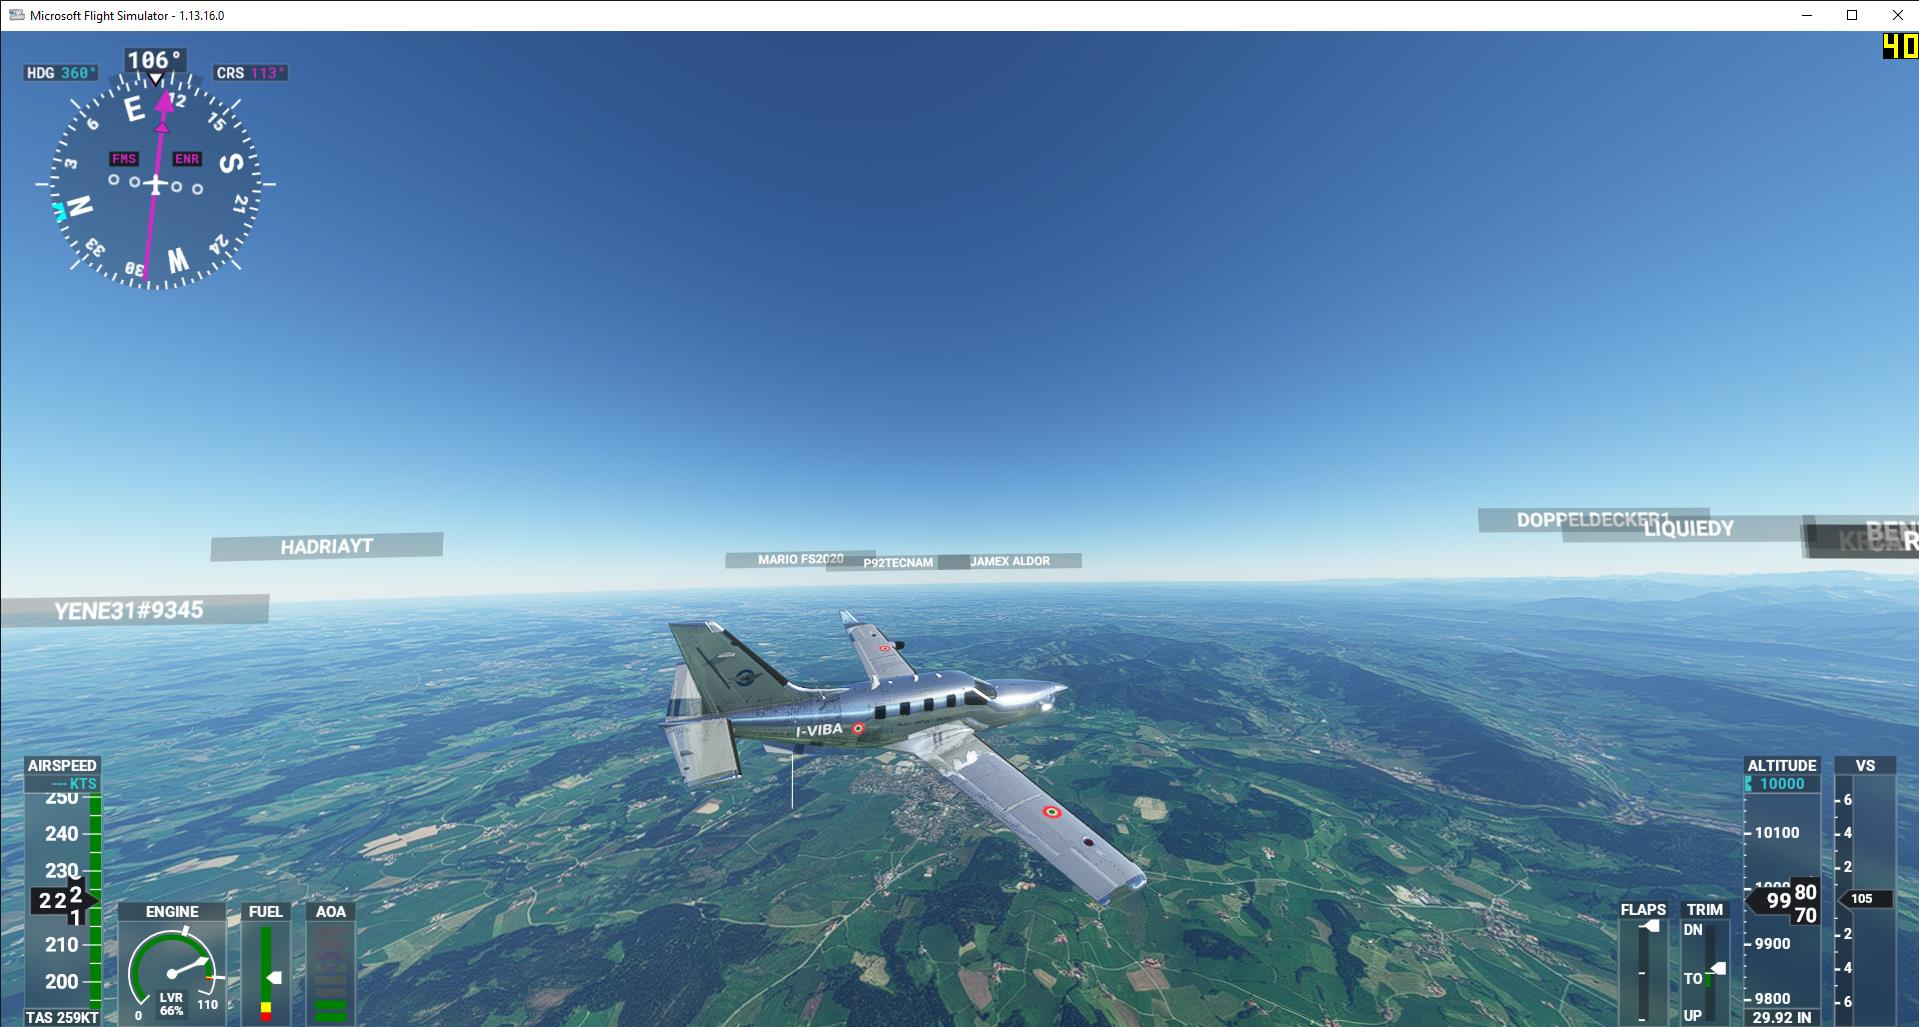 https://vivendobyte.blob.core.windows.net/58401/Microsoft Flight Simulator 23_02_2021 12_51_50.jpg